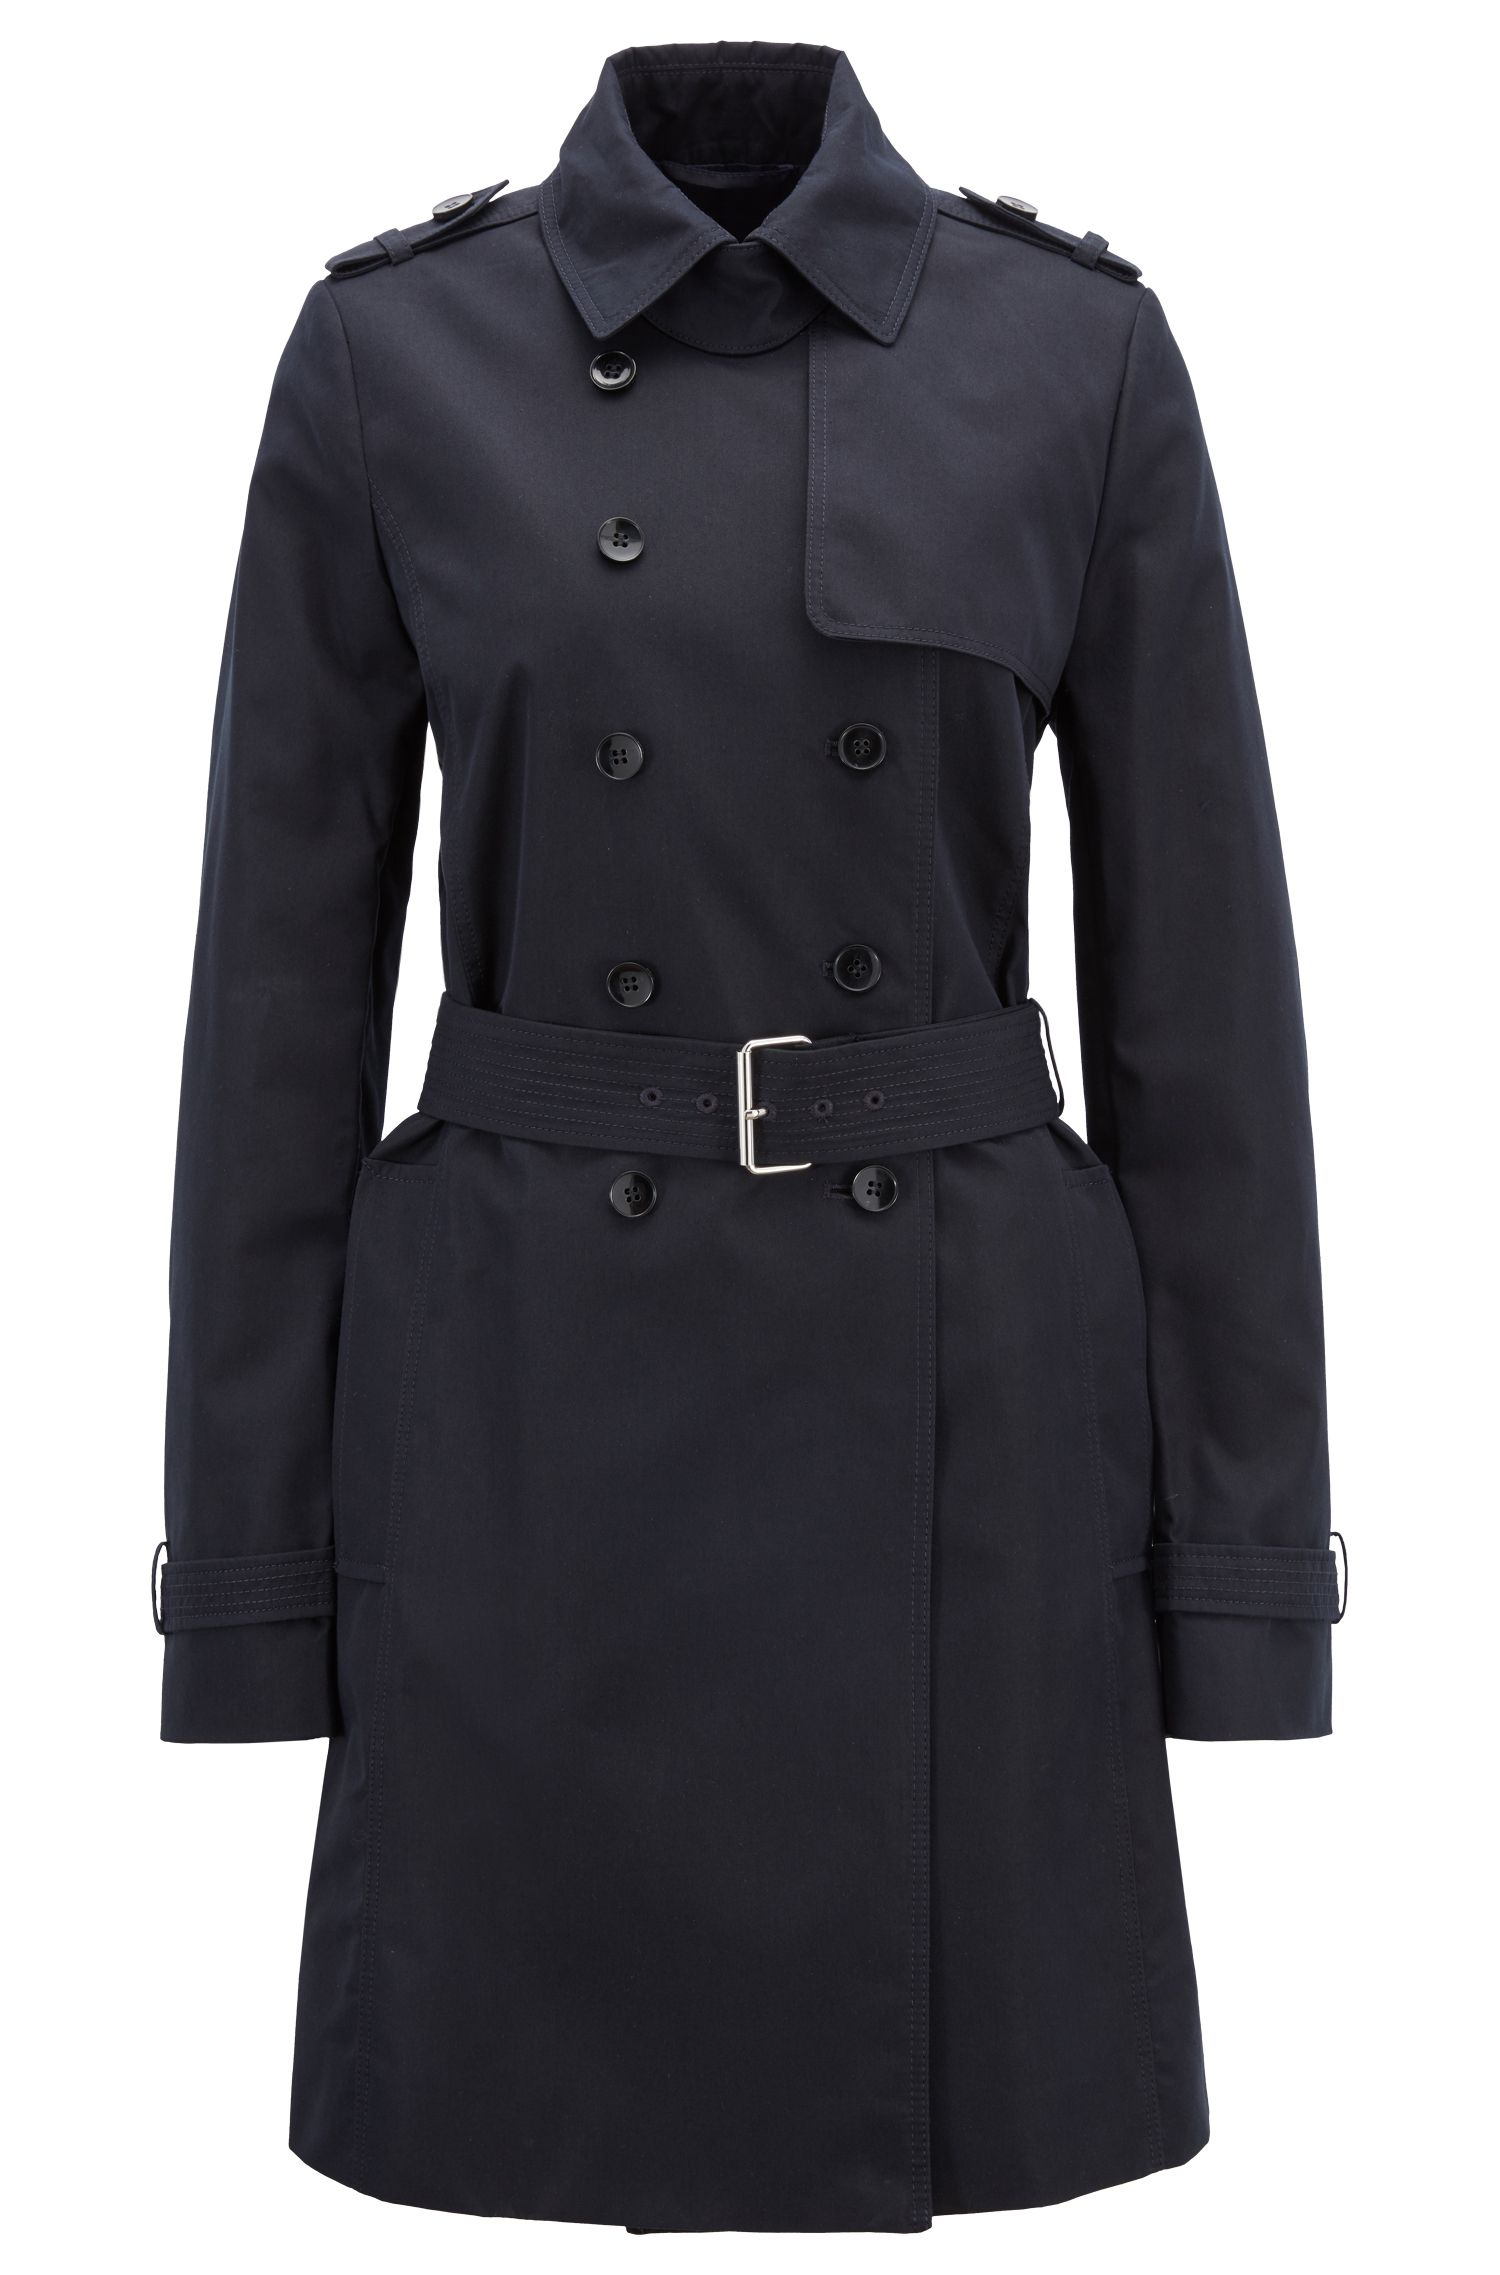 Cotton-blend trench coat in a regular fit